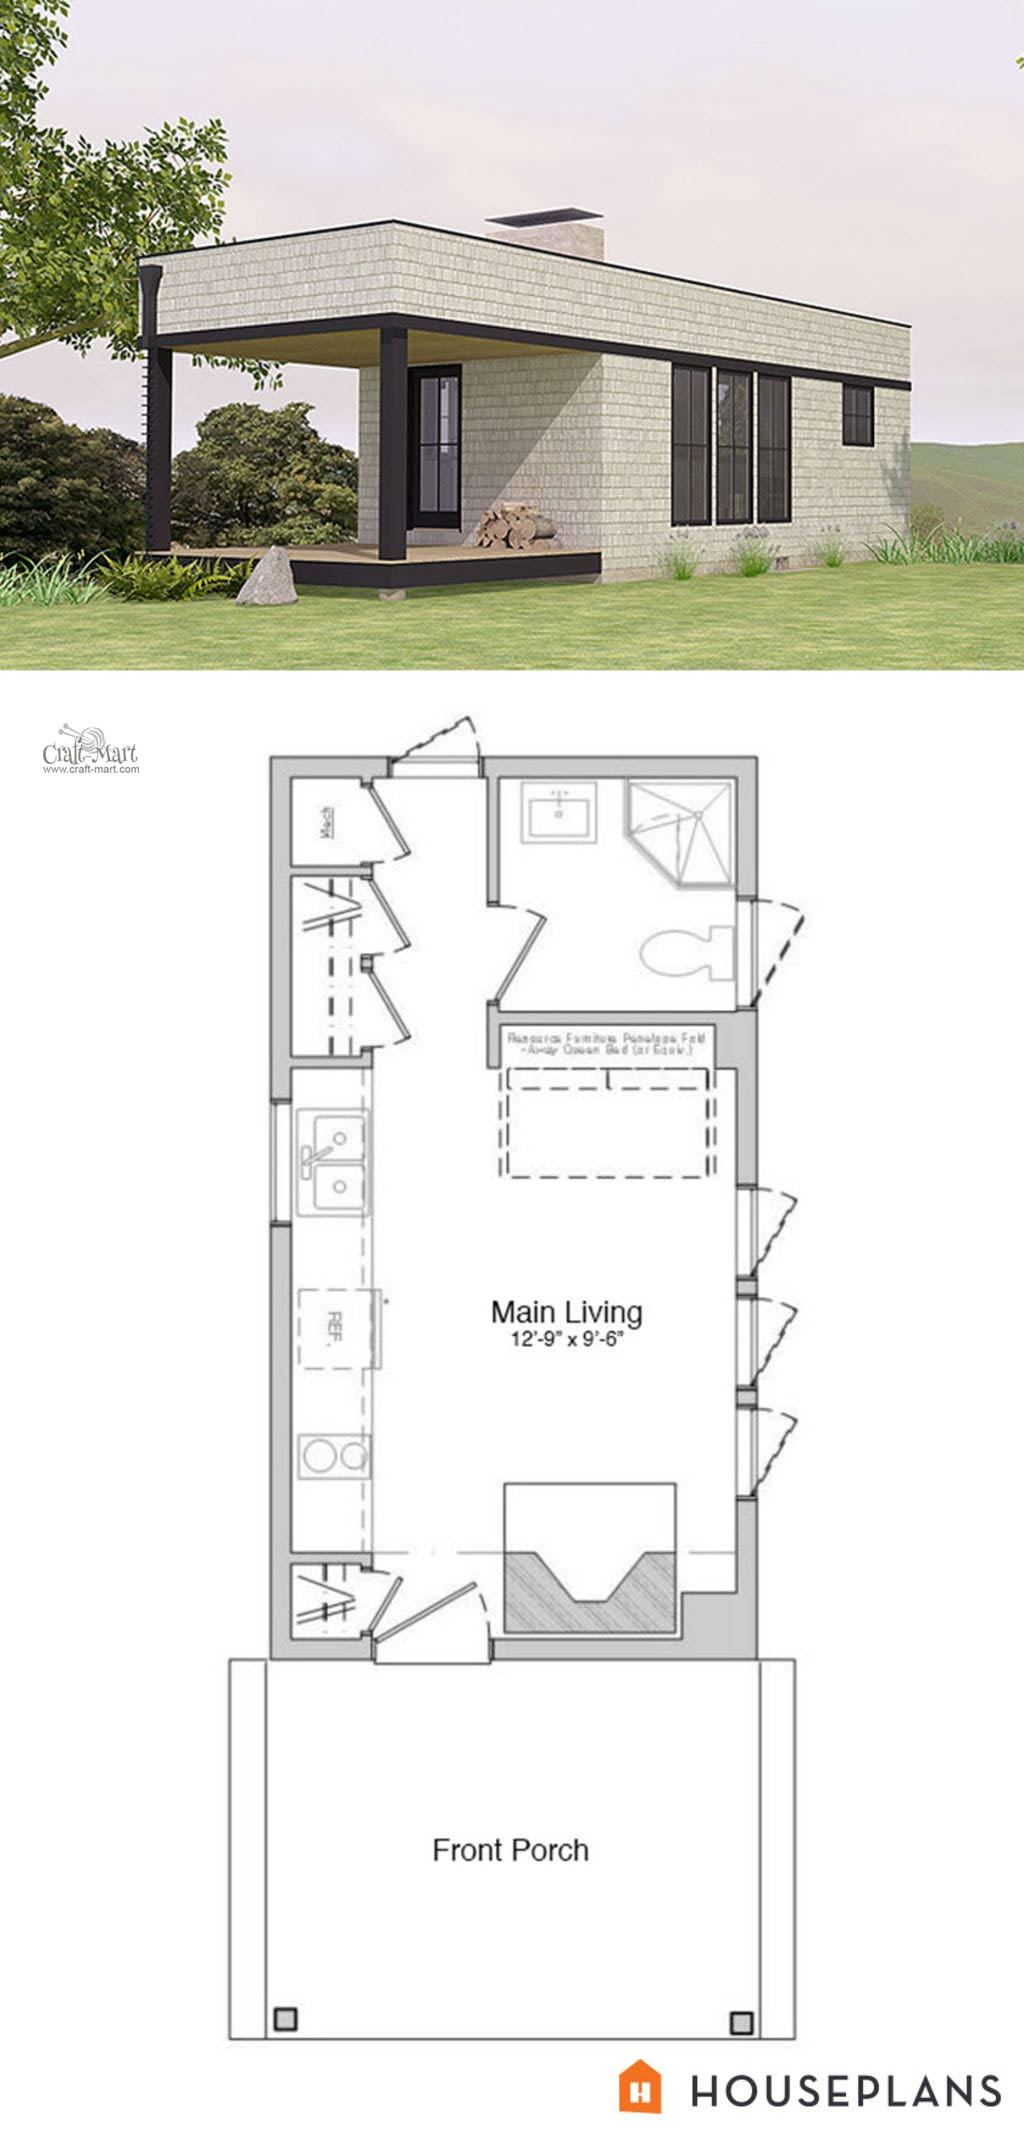 How to Draw House Plans Free Lovely 27 Adorable Free Tiny House Floor Plans Craft Mart